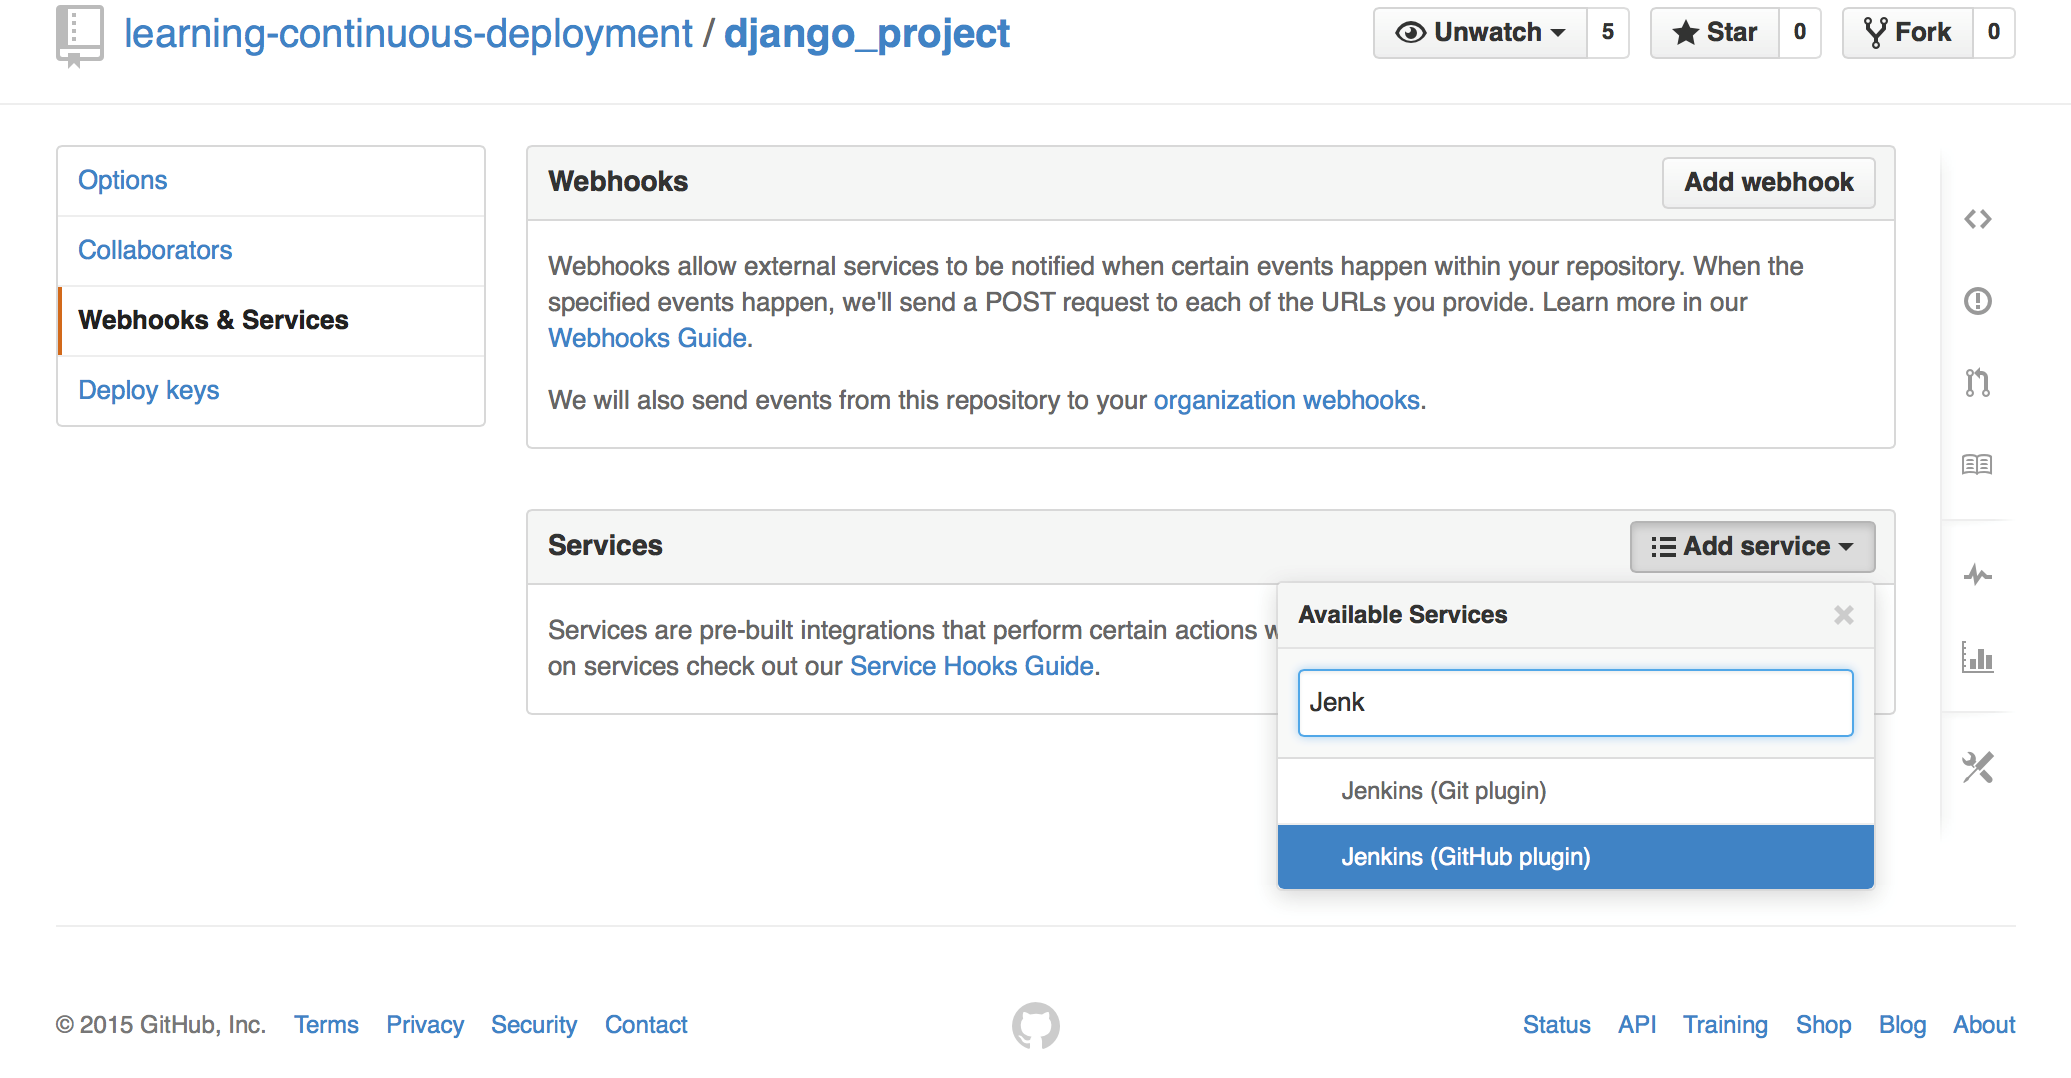 Adding a service to the GitHub project